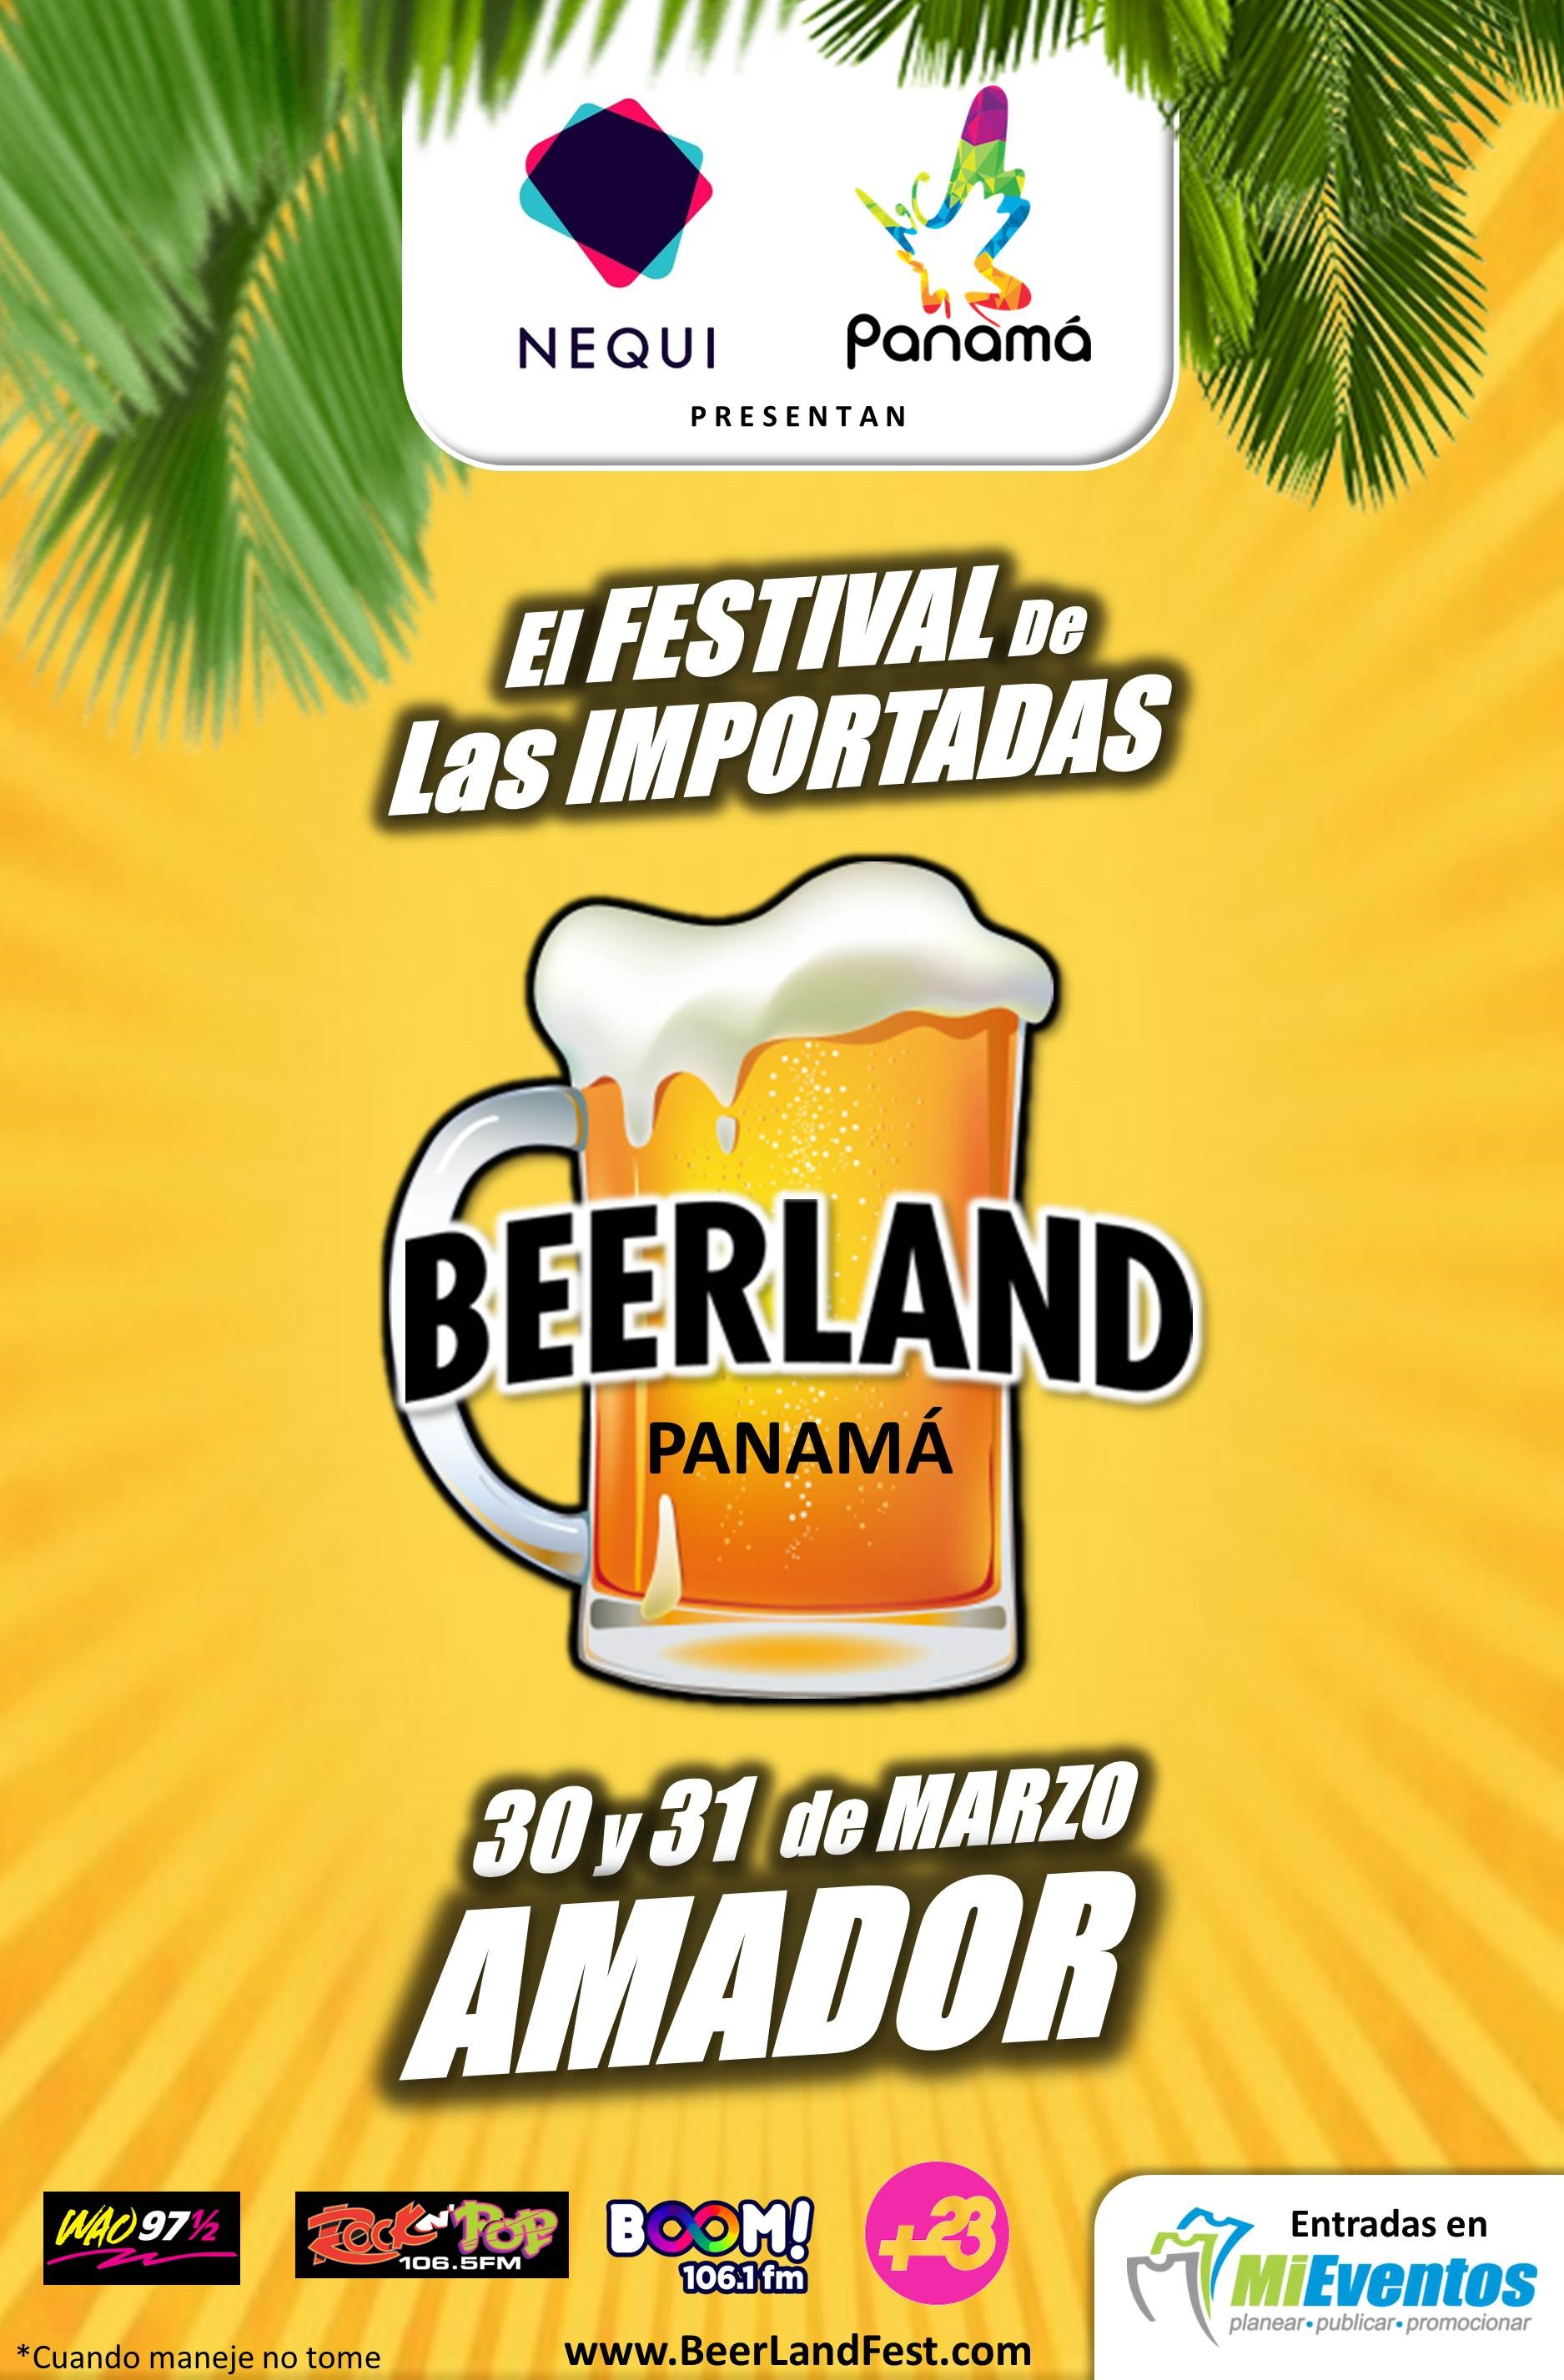 Photo of Beerland Panamá